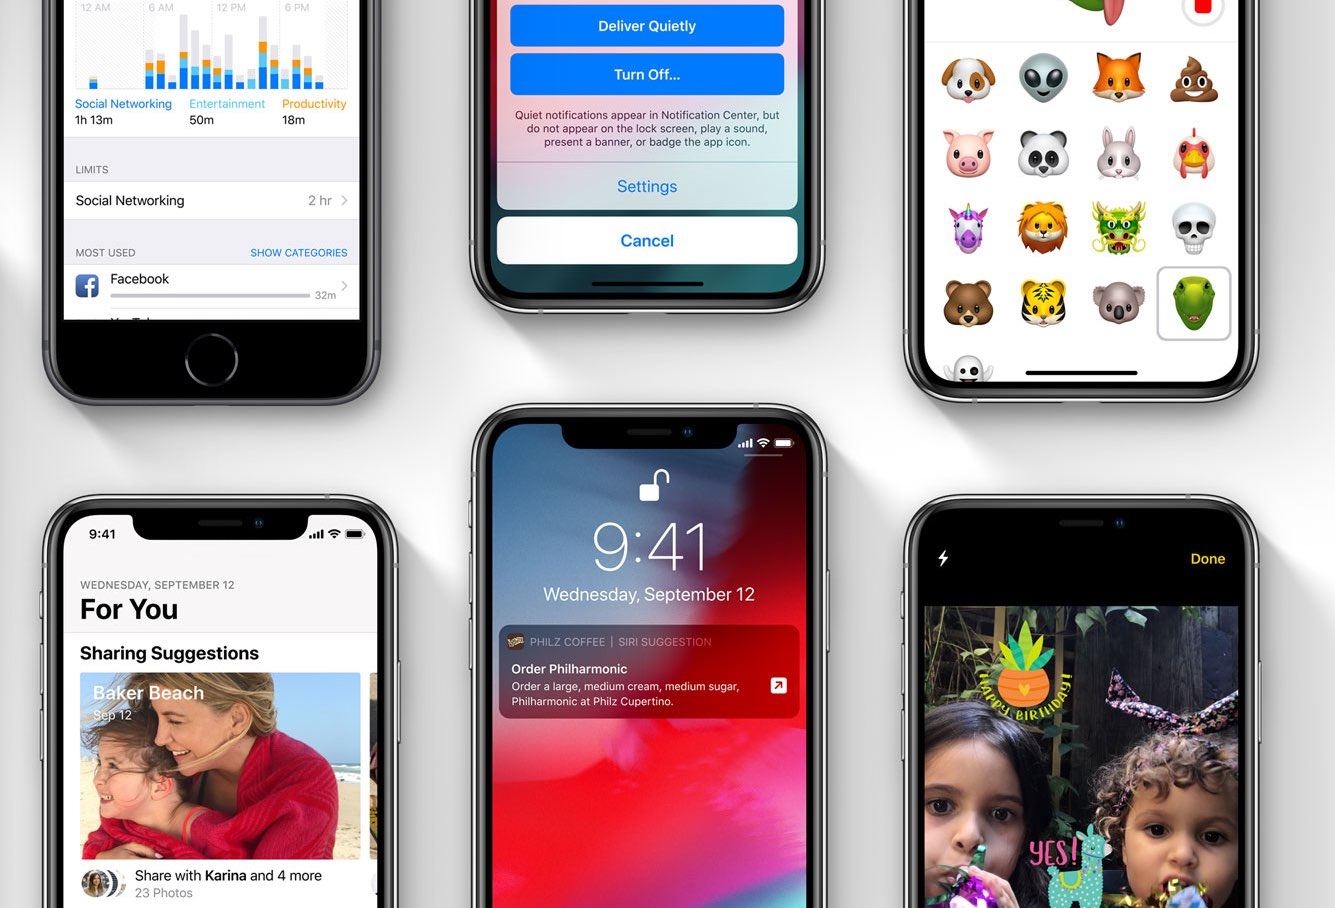 Apple Releases Ios 12 2 With New Animoji Support For New Apple News Service And More